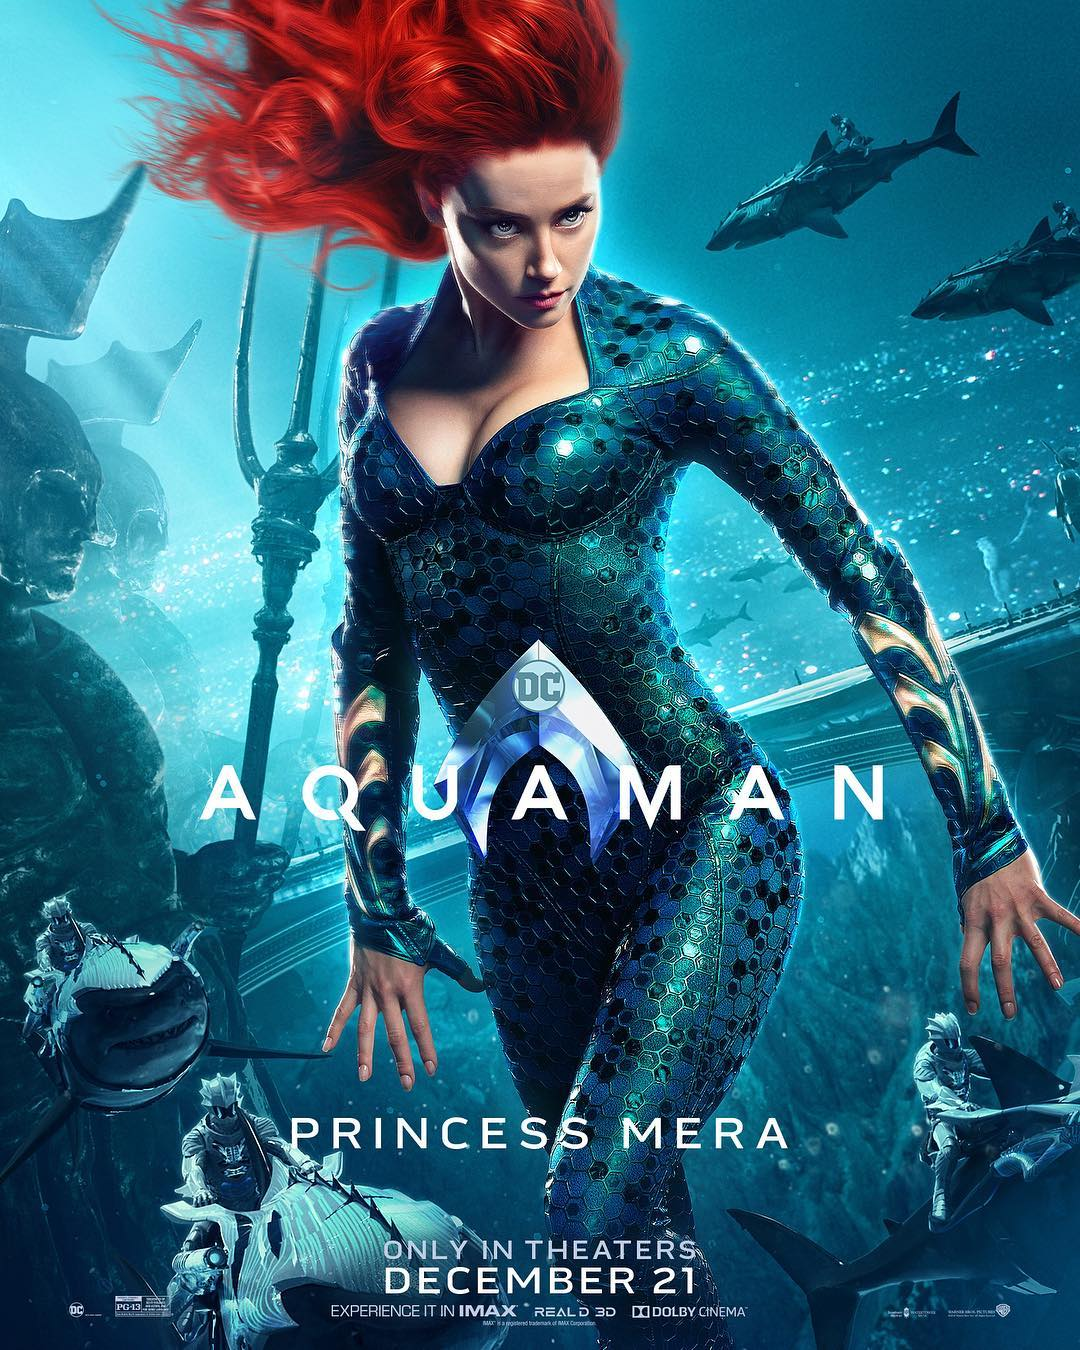 Amber Heard is Mera on a new Aquaman movie poster.